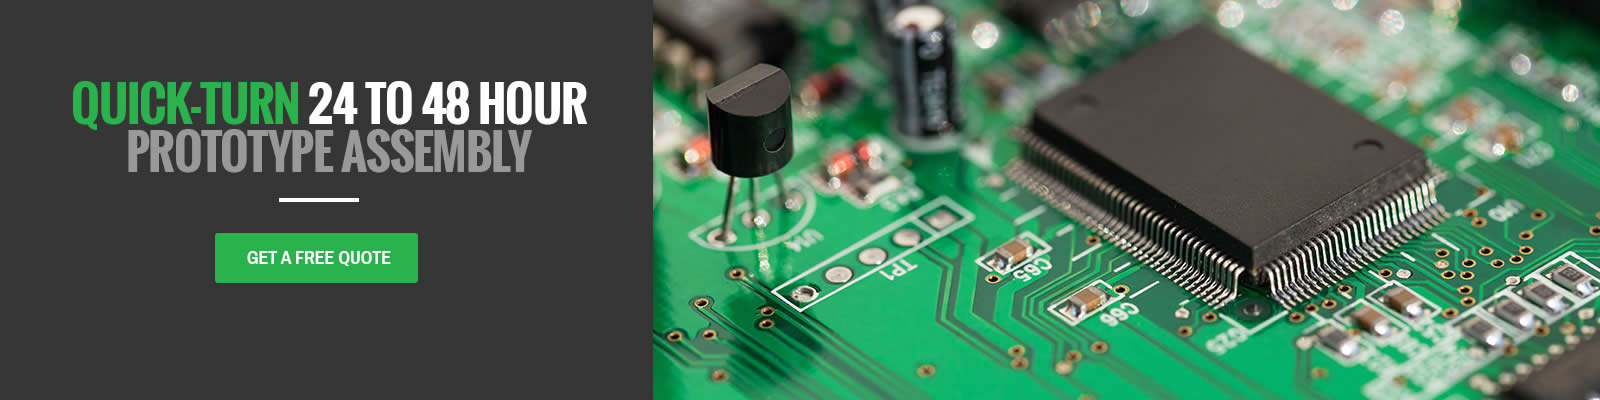 Pcb Quote Extraordinary Quick Turn Pcb Manufacturing Pcb Assembly Services